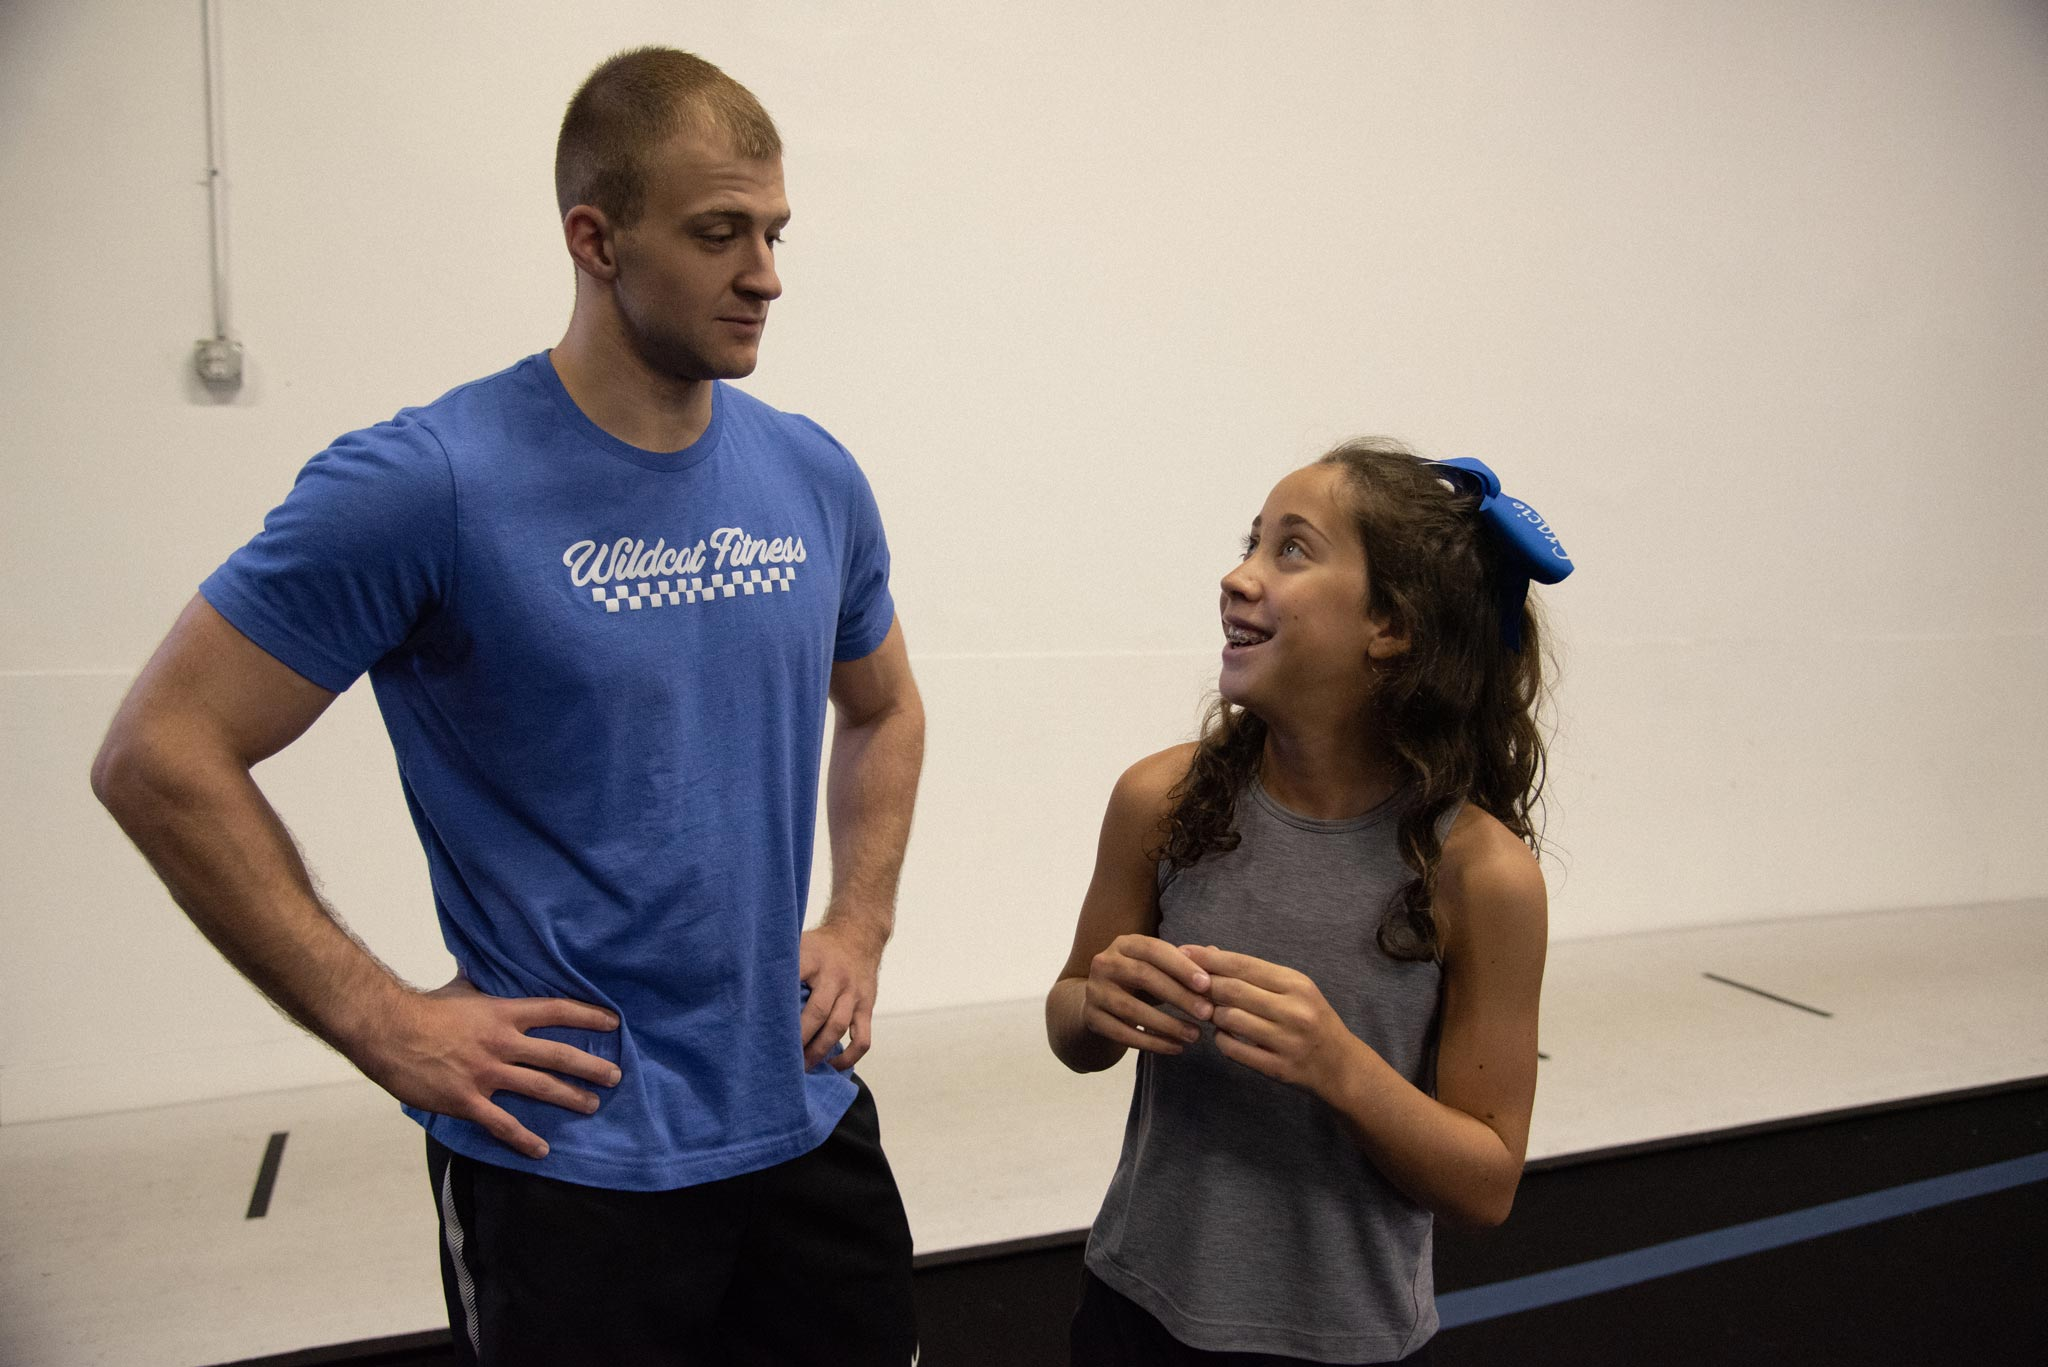 Gracie pictured with a young adult male in a gymnasium after practicing cheerleading stunts. She is looking up at him and smiling.